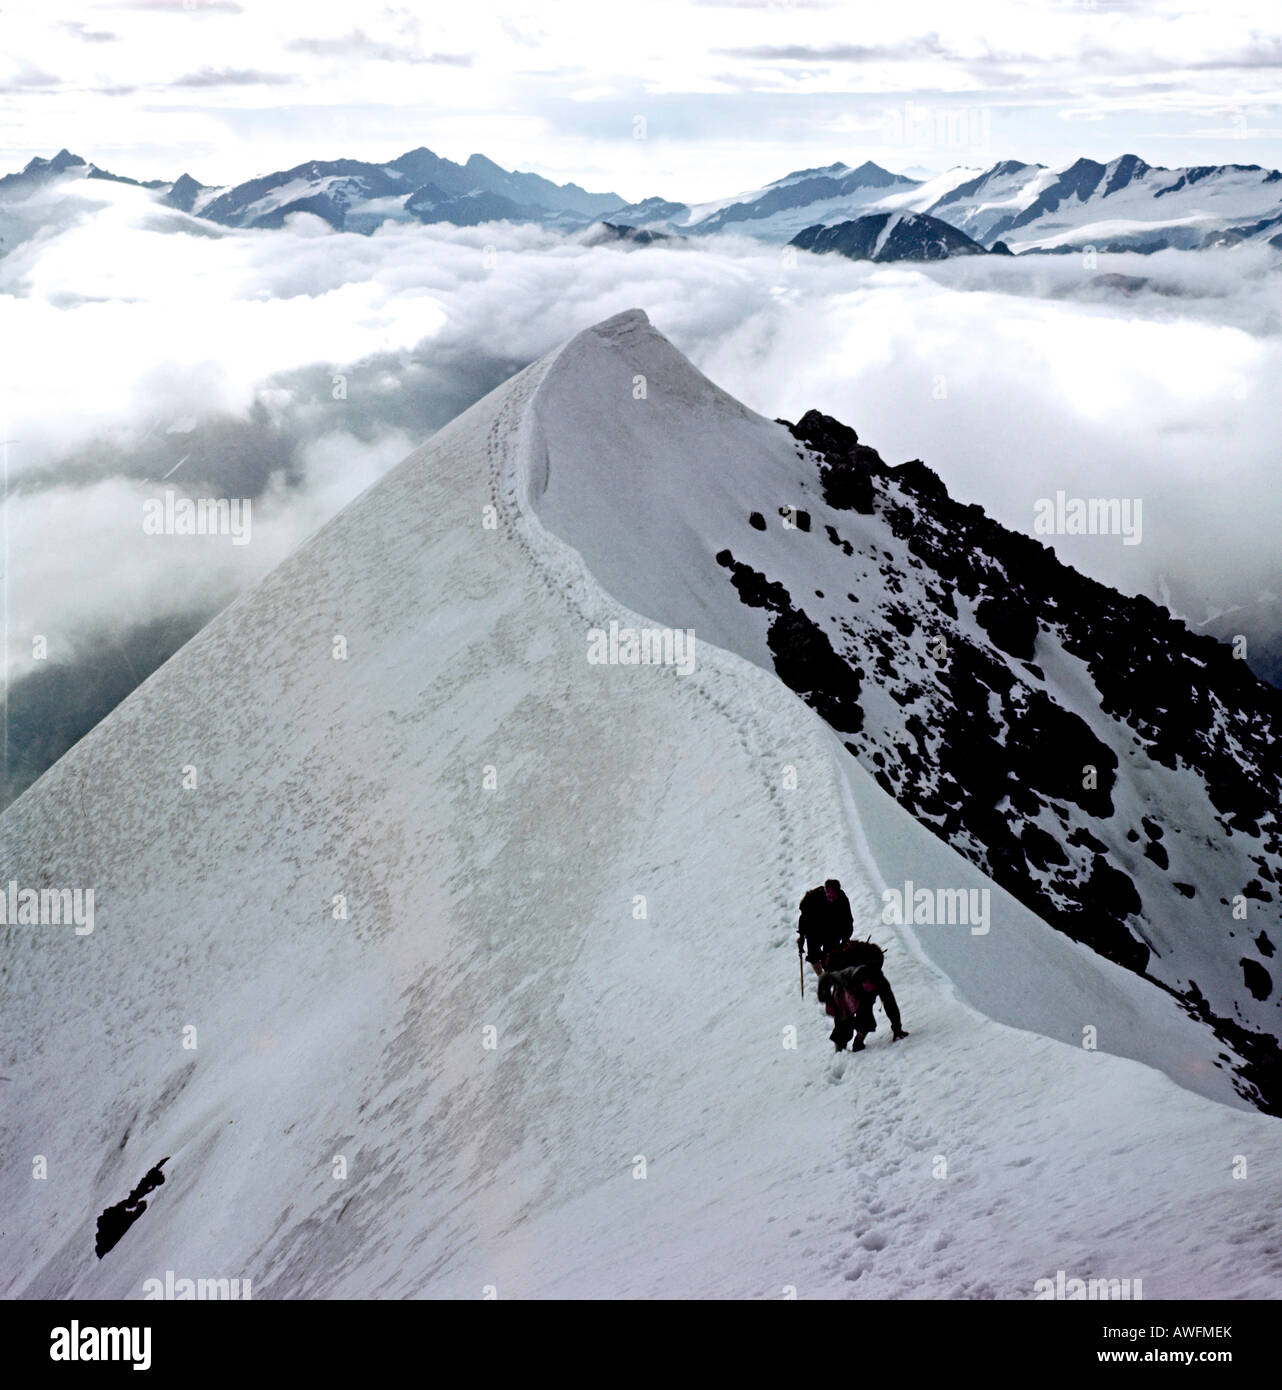 Mountain climber at Ortler Hintergrat, Ortlergruppe, South Tirol, border to Lombardy, Italy, Europe - Stock Image